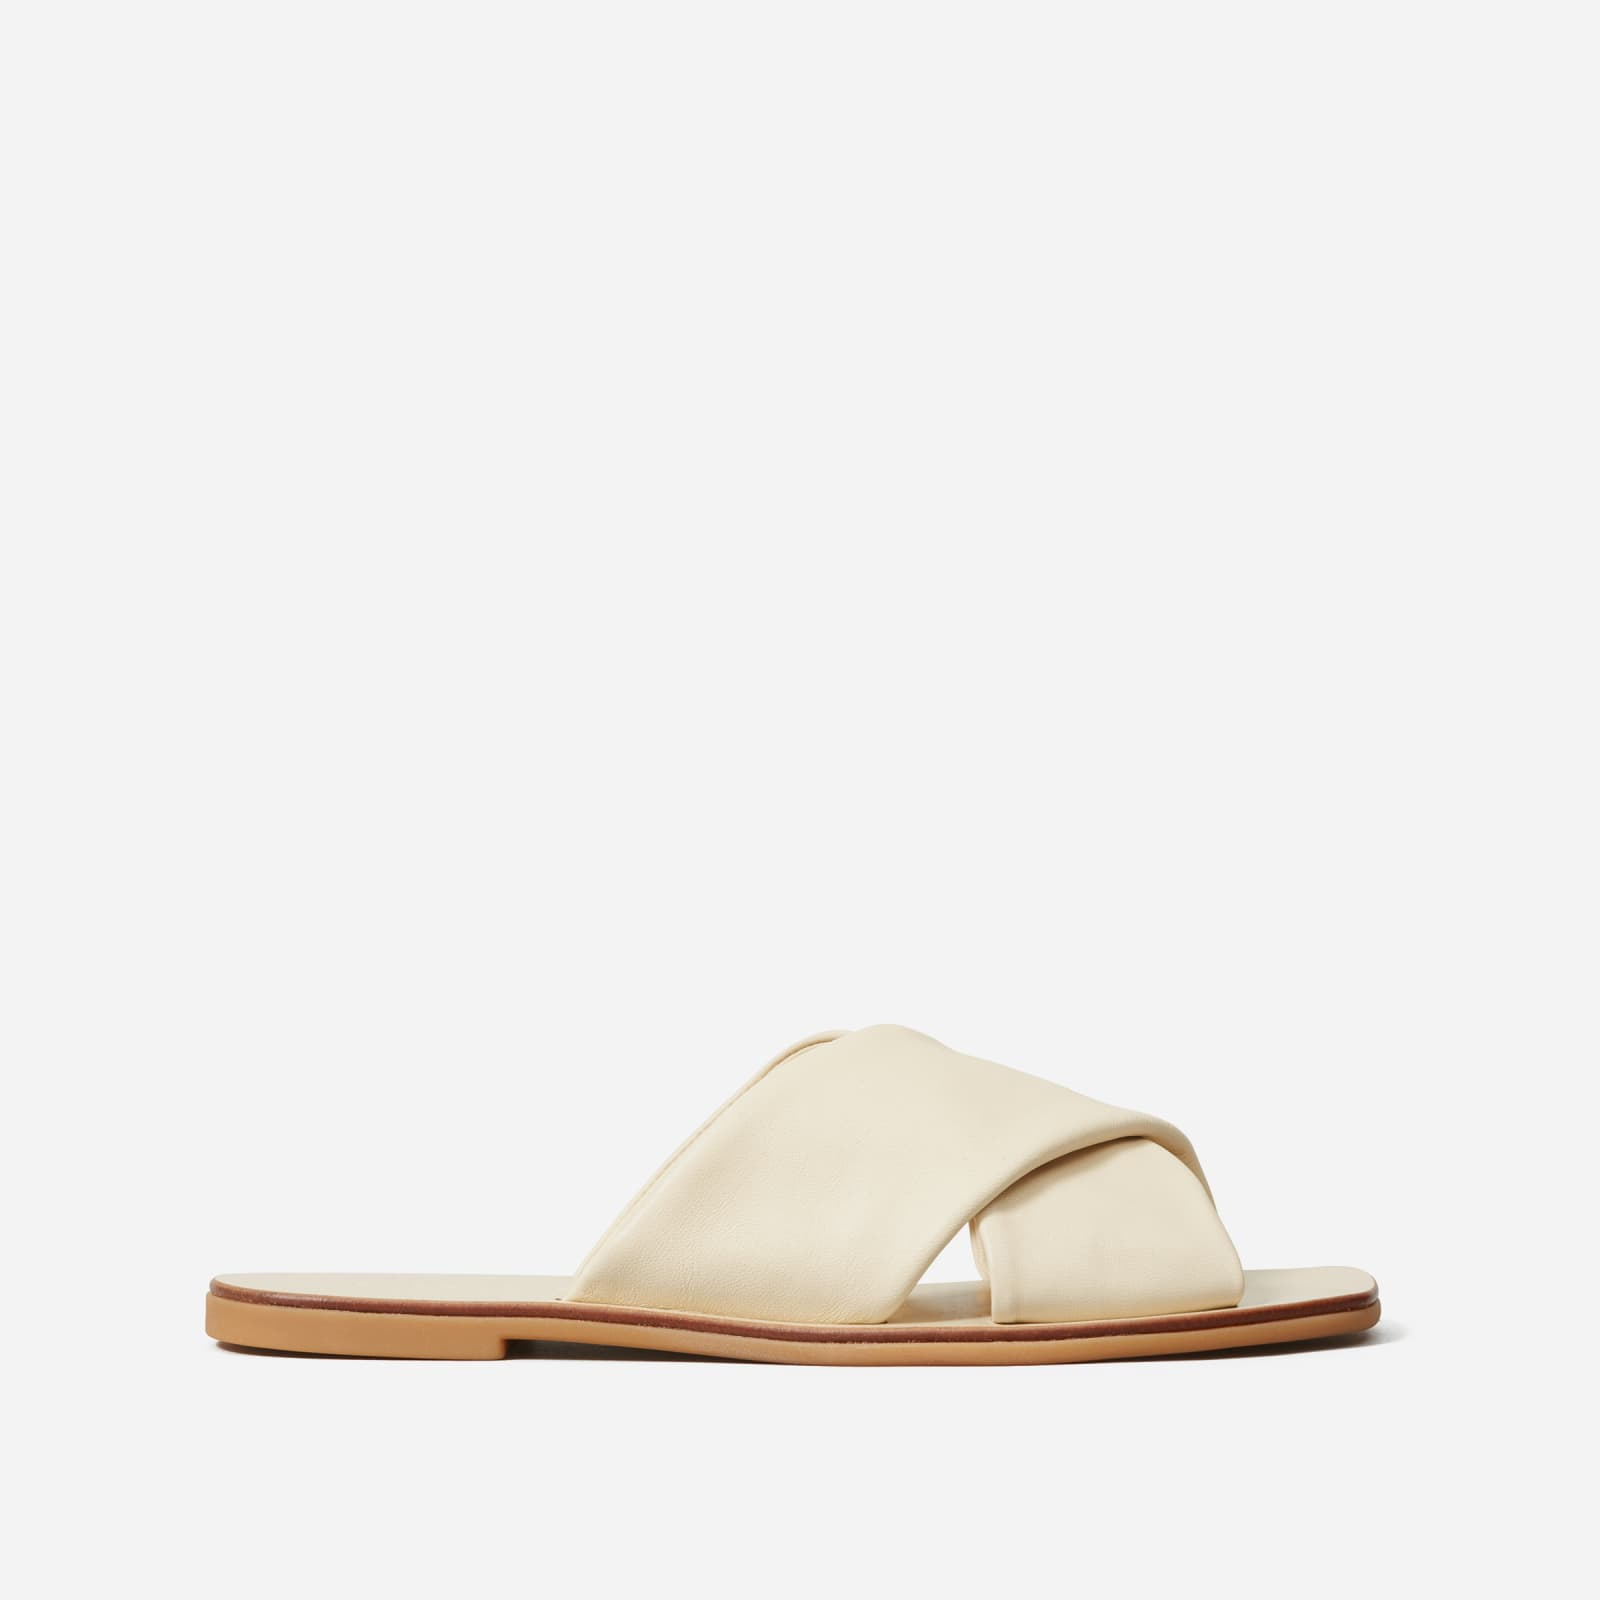 day crossover sandal by everlane in cream, size 5